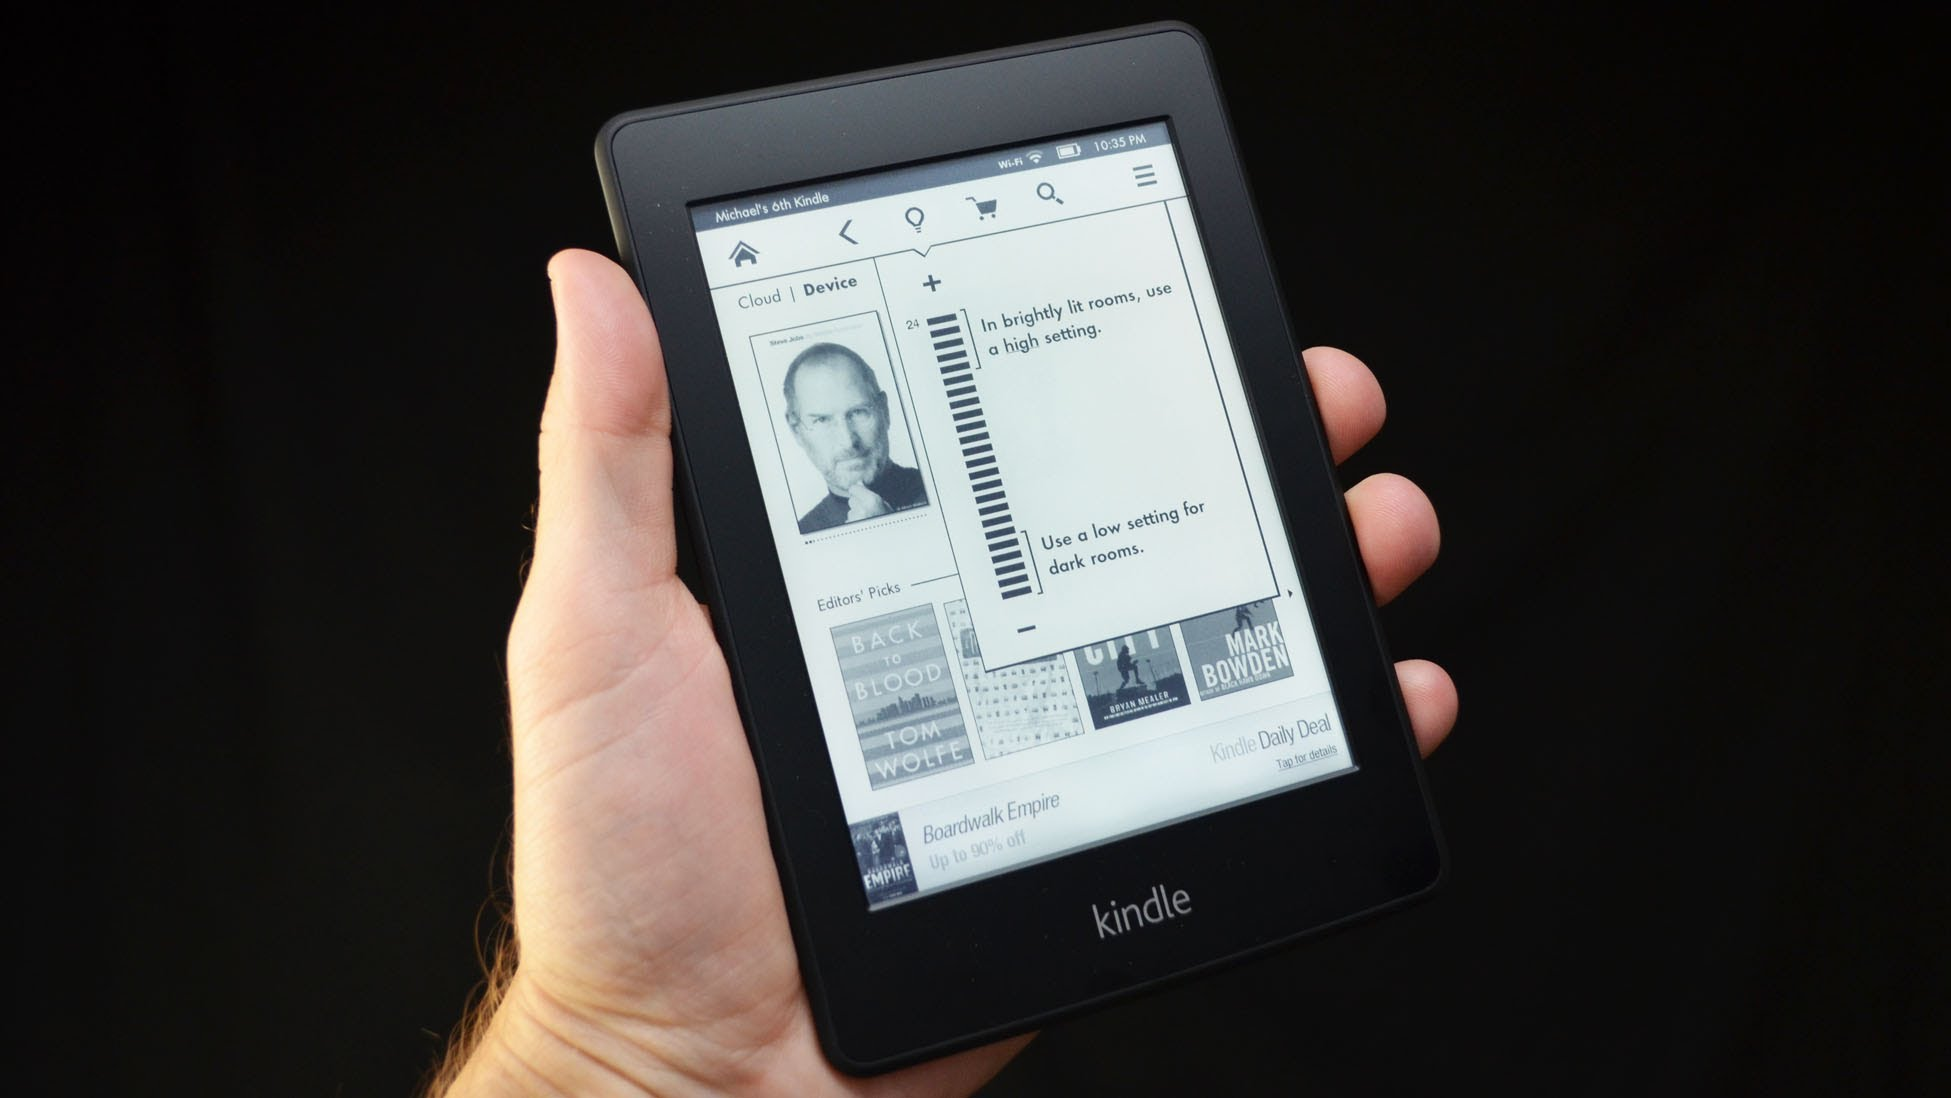 25 Interesting And Awesome Facts About The Amazon Kindle